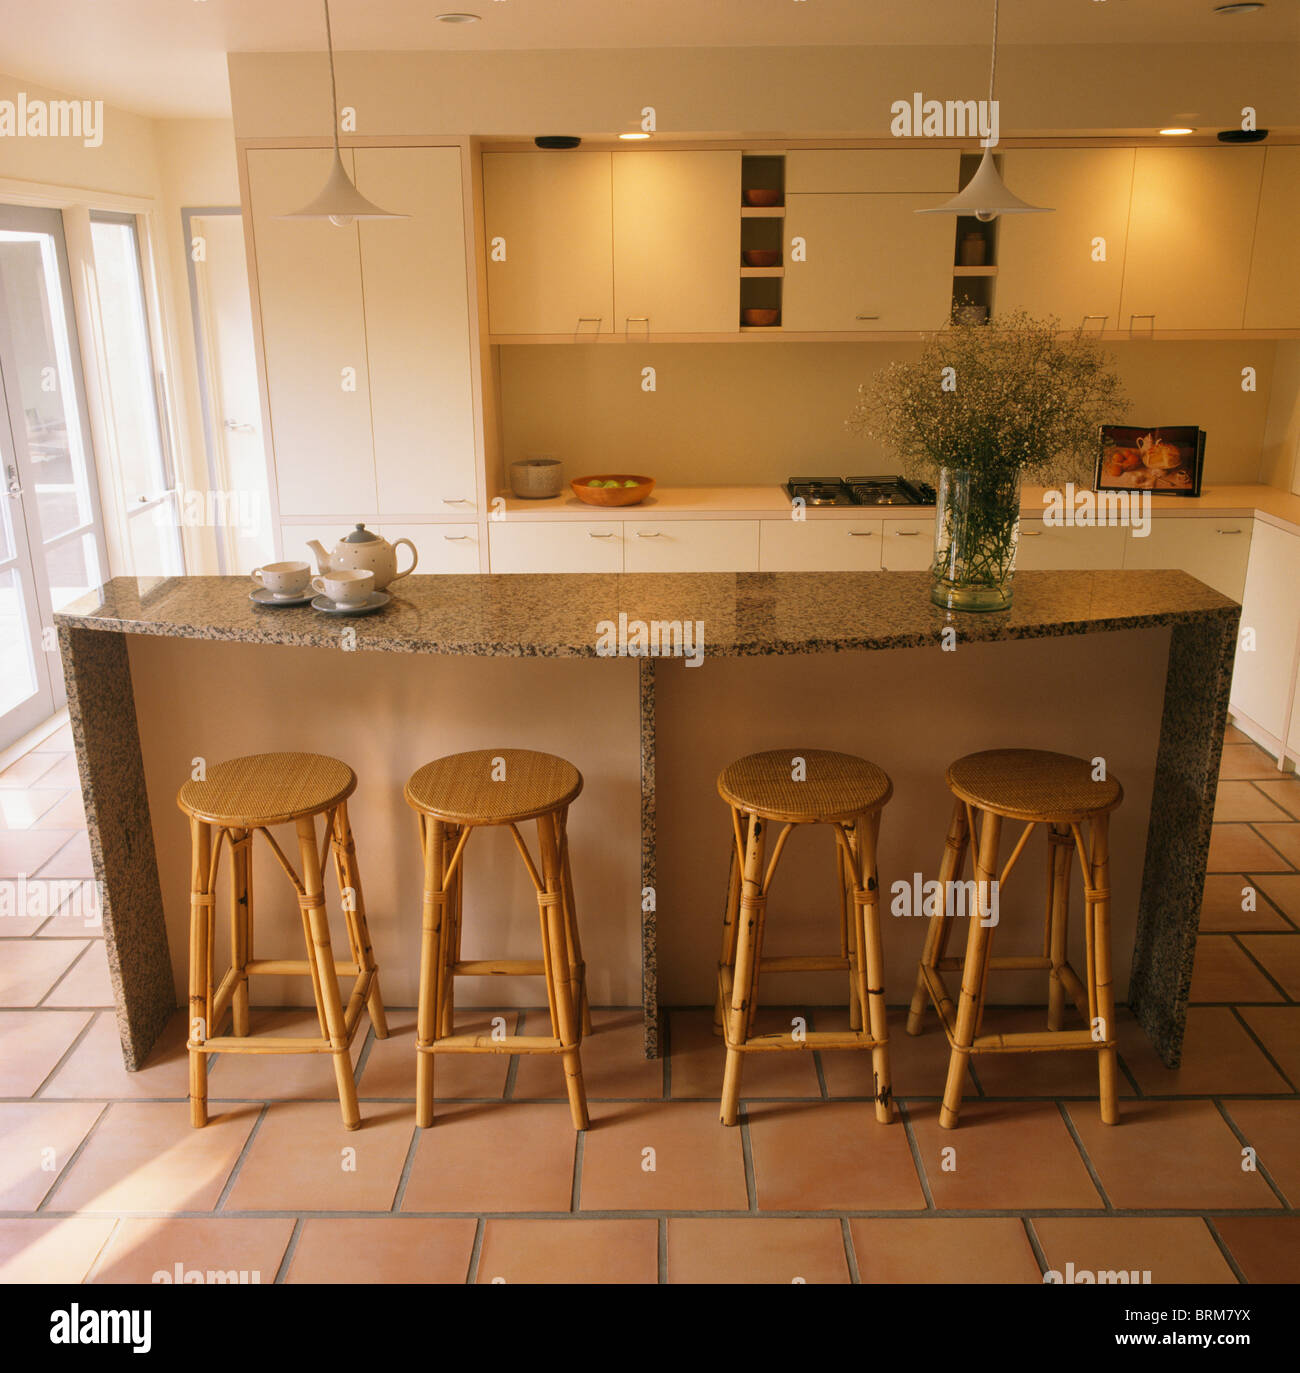 Cane Stools At Breakfast Bar On Granite Topped Island Unit